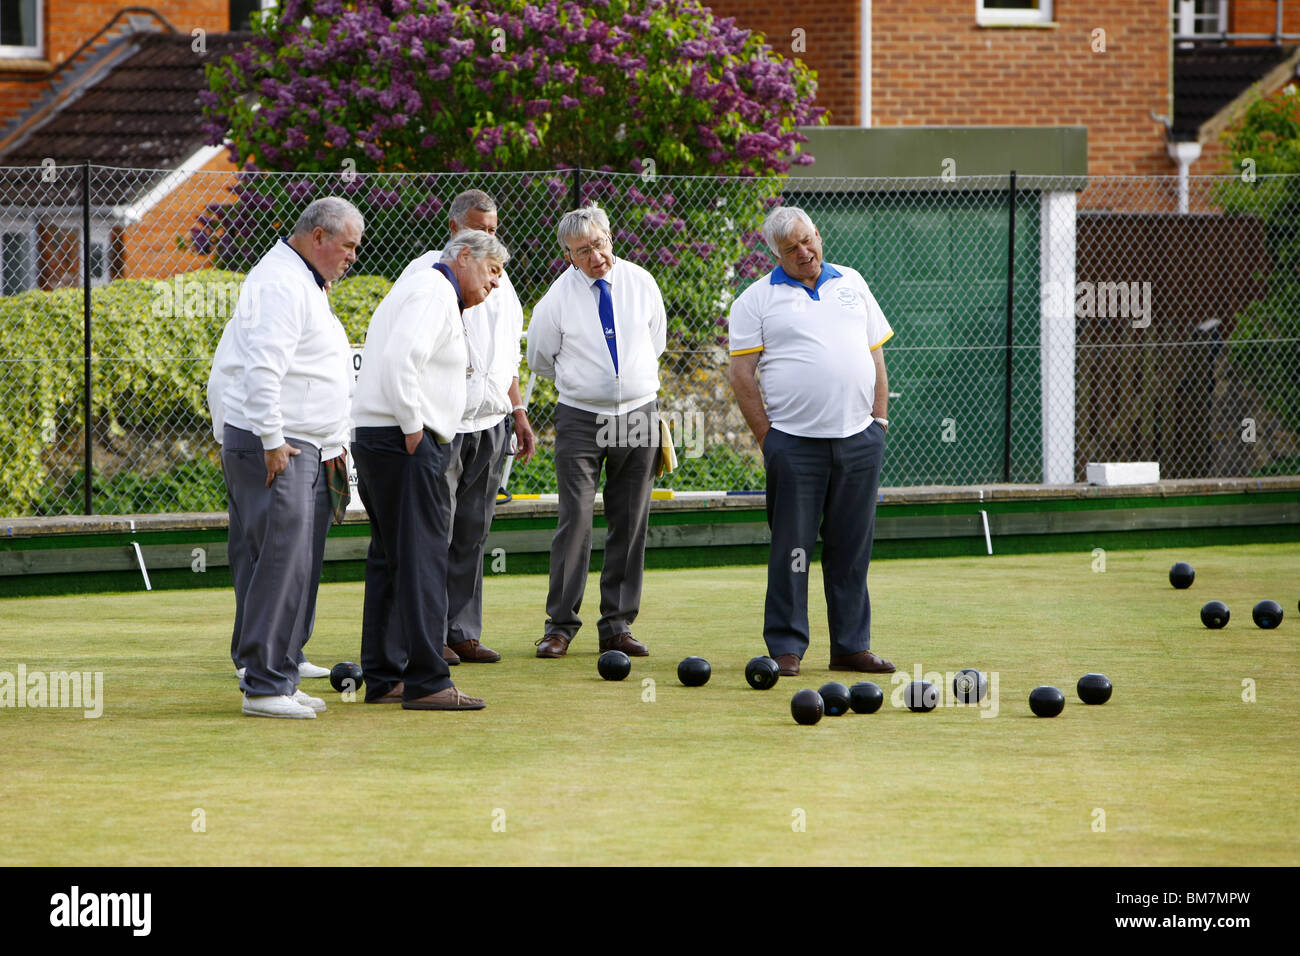 A Crown Green Bowls evening tournament - A nice sedate game for retired people but a very competitive sport played - Stock Image